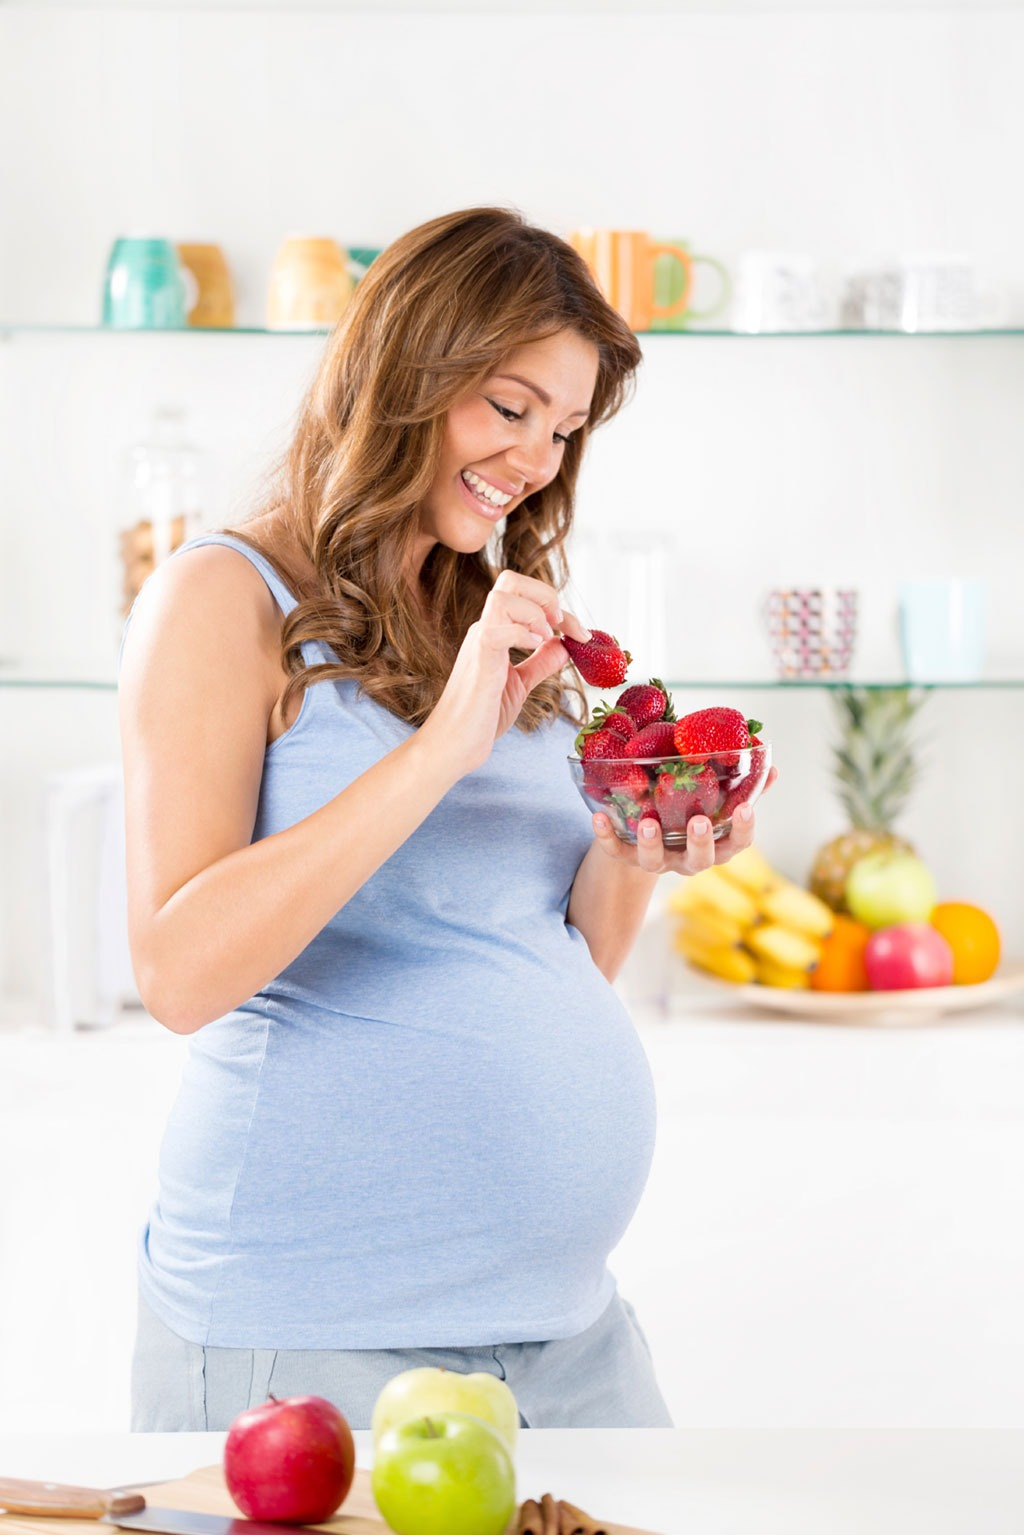 How to eat properly during pregnancy